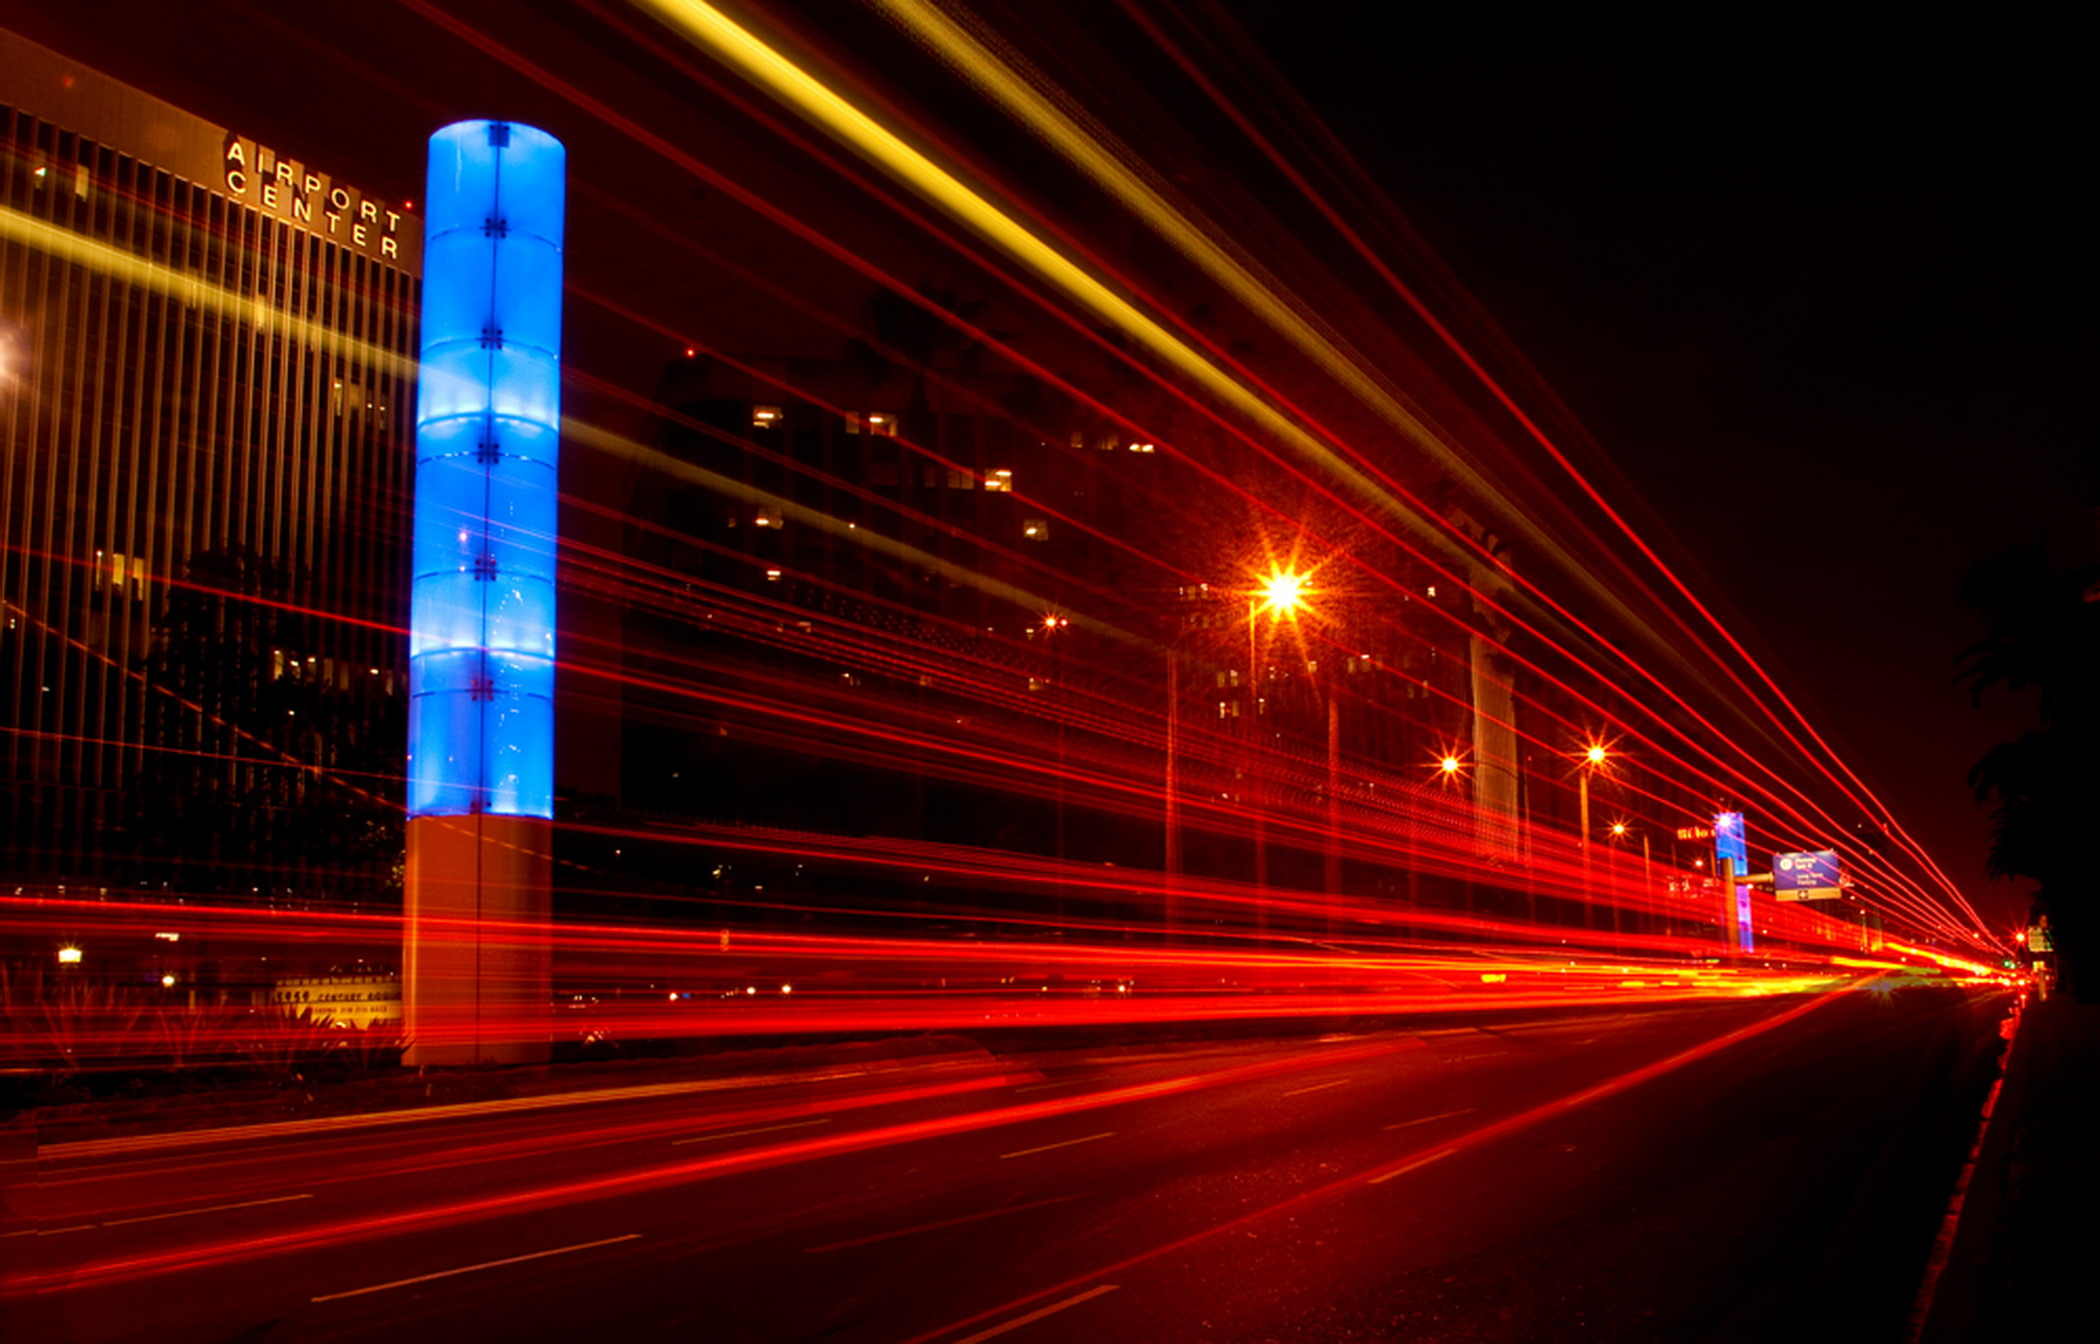 Gateway-LA-street-lights-at-night-at-road-level